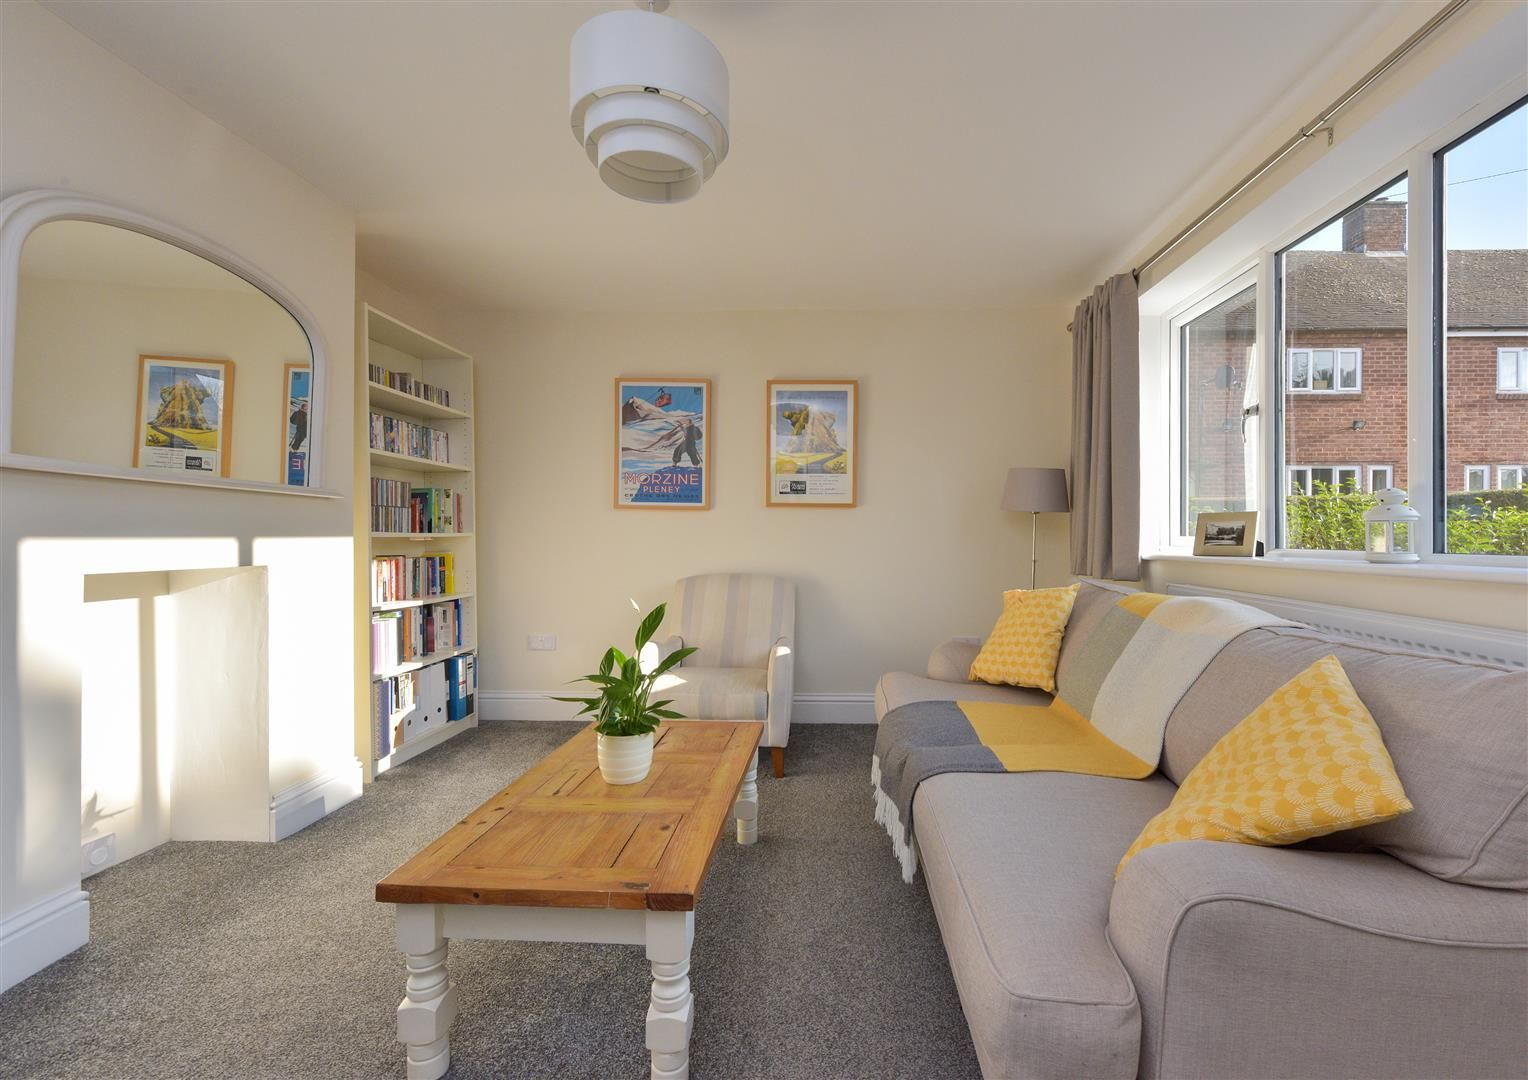 3 bed house for sale in Clent  - Property Image 11